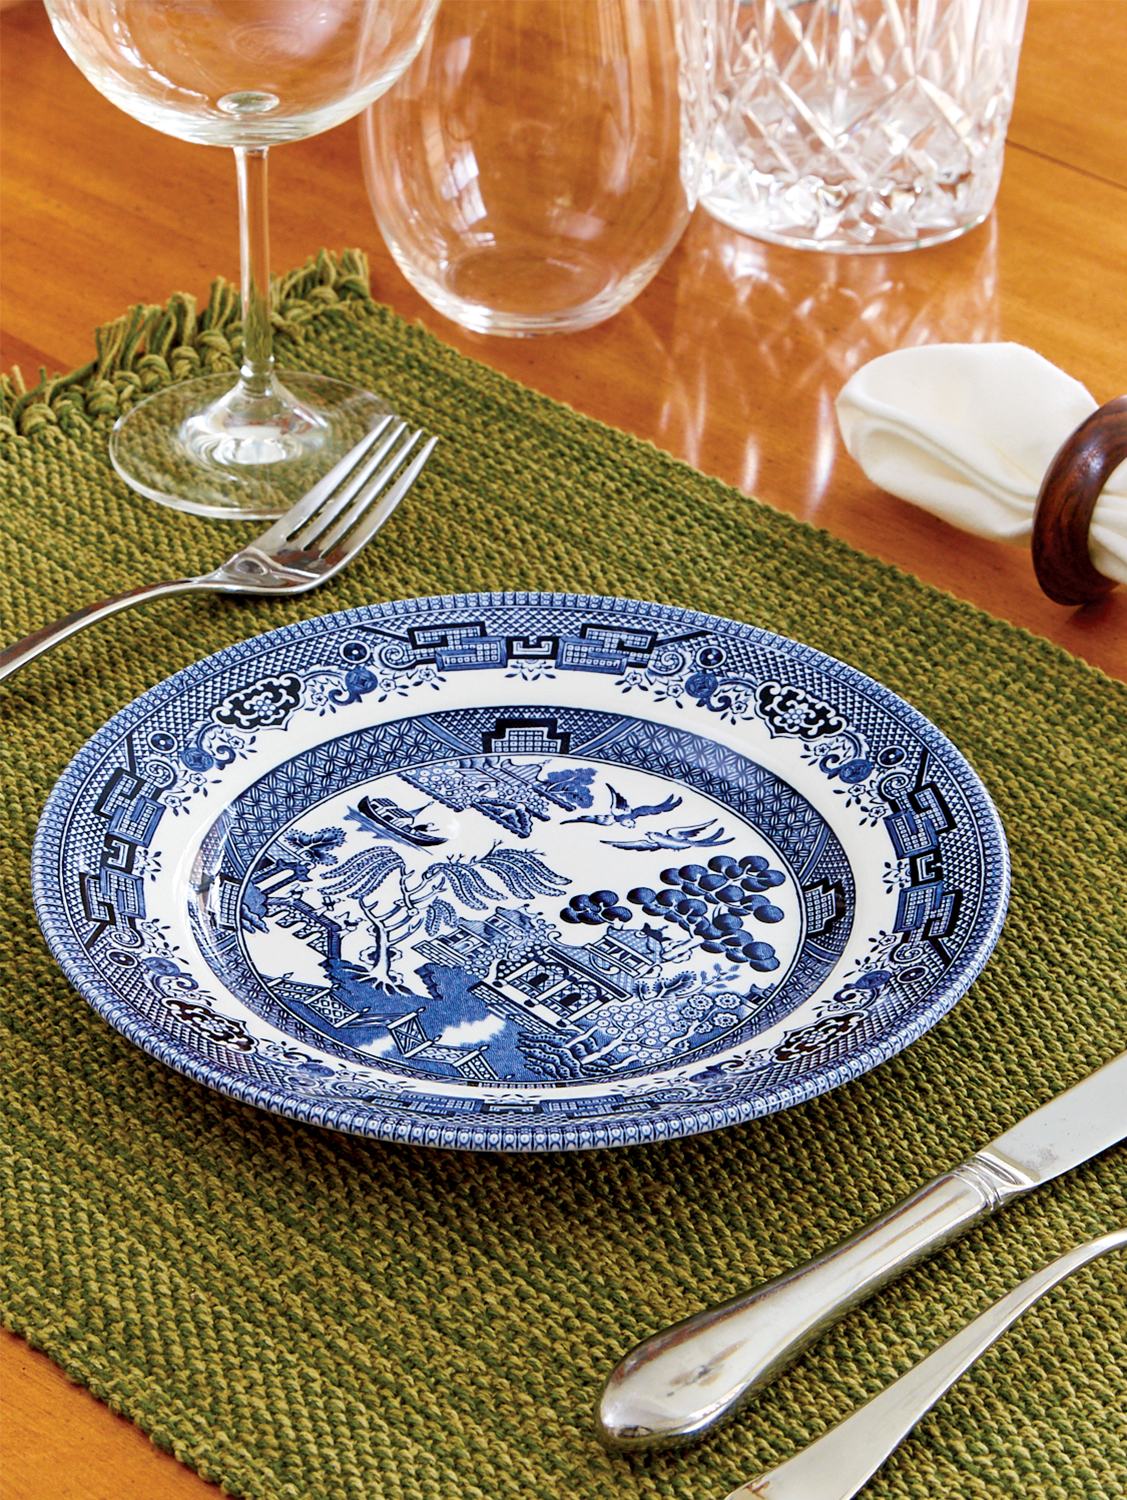 Blue And White Churchill Plate High Standard In Quality And Hygiene Pottery & China Pottery & Glass